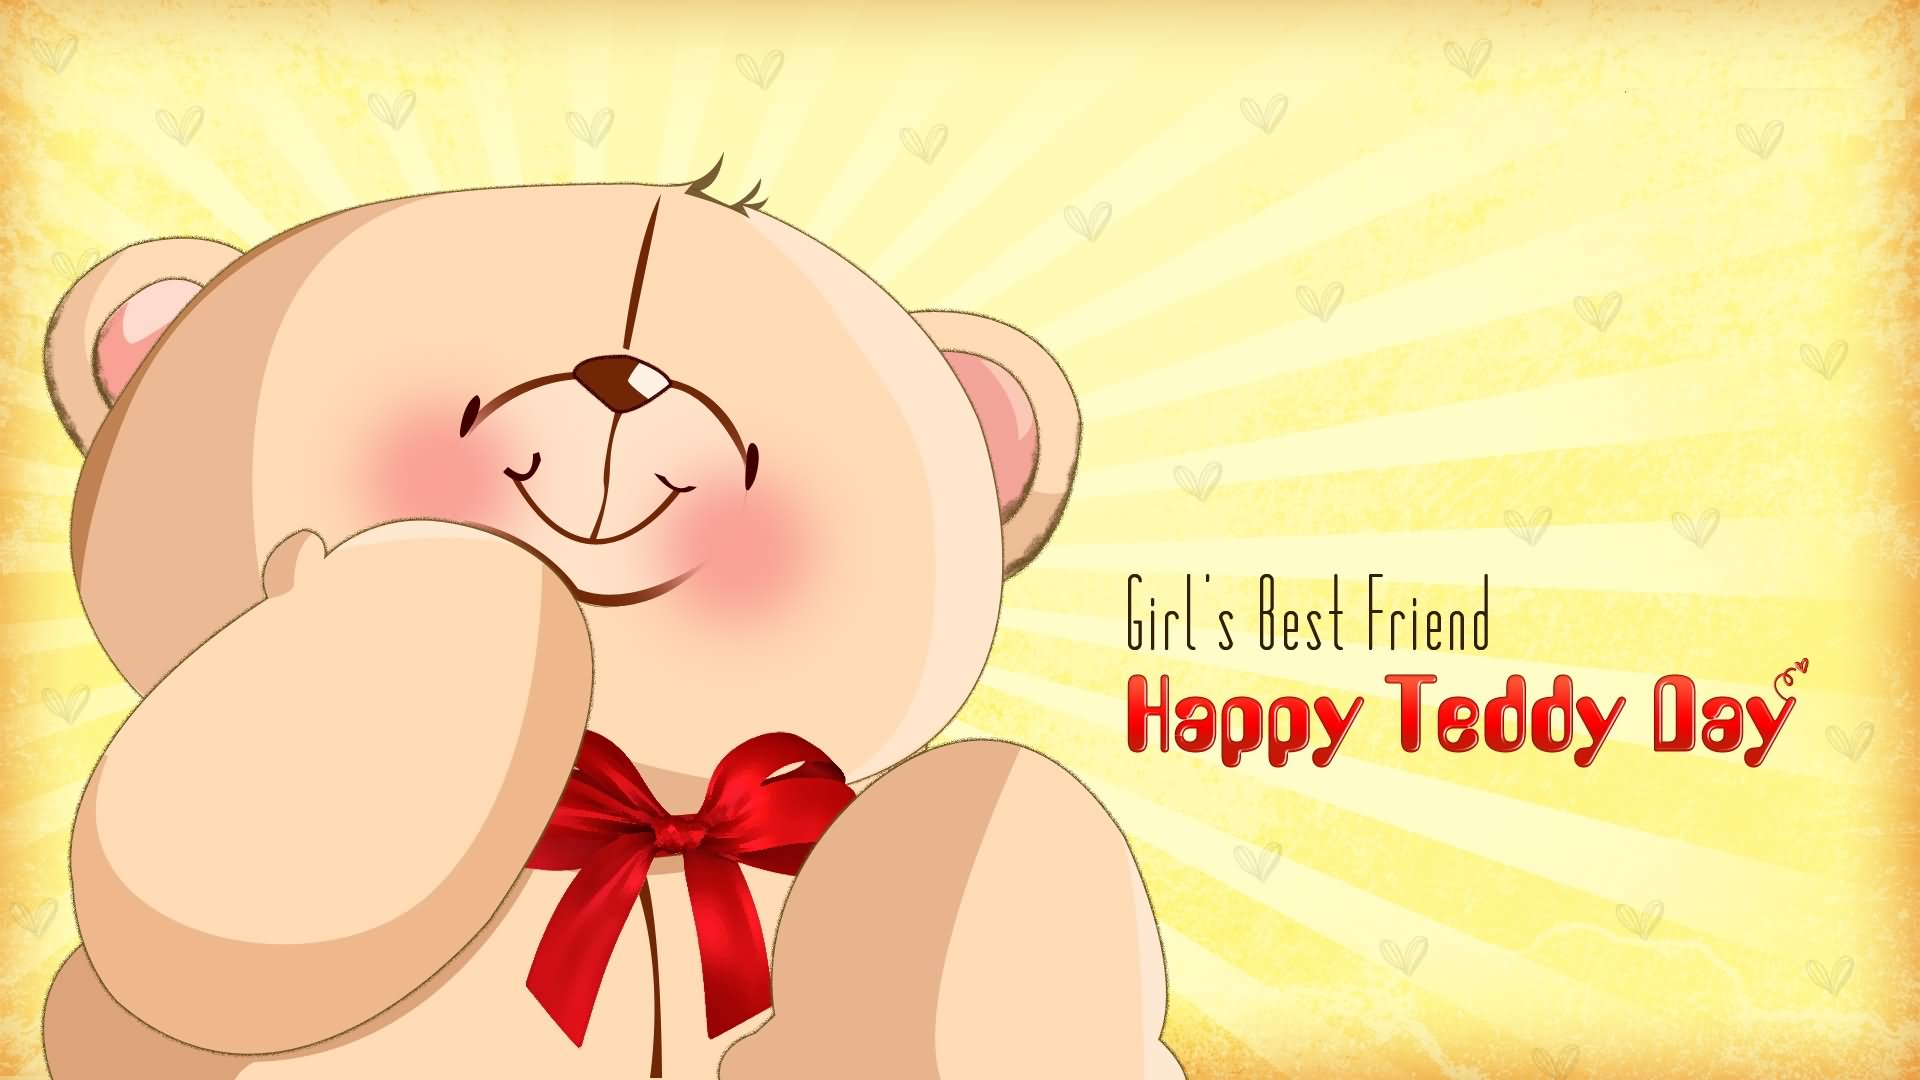 10-Teddy Day Wishes